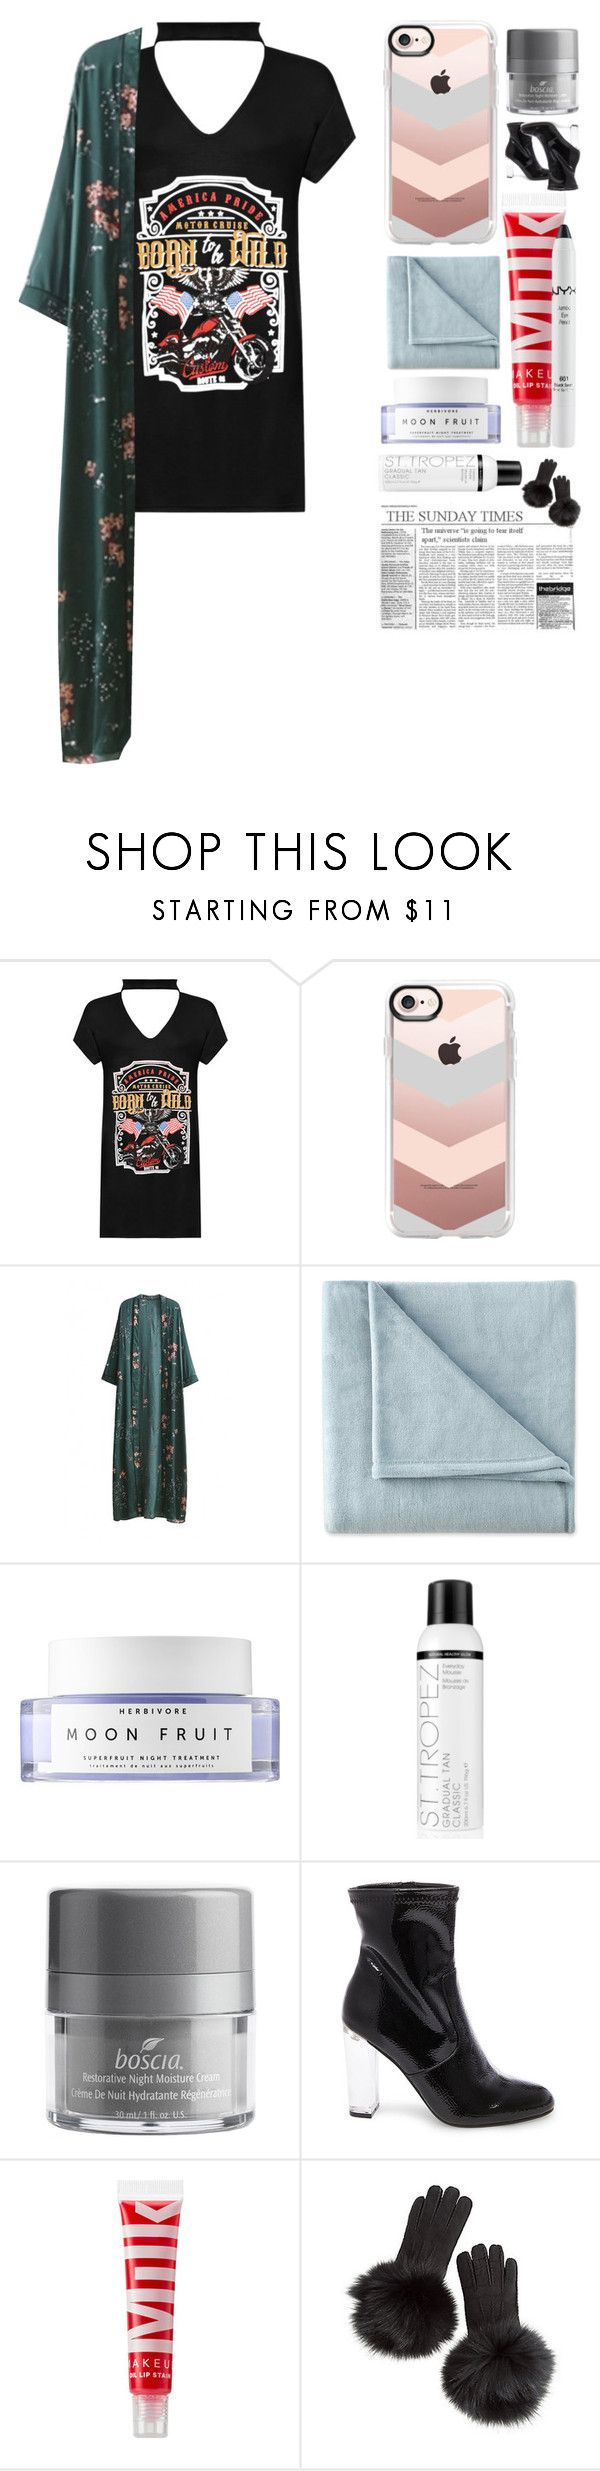 """I got issues"" by aline-sofia ❤ liked on Polyvore featuring WearAll, Casetify, WithChic, JCPenney Home, Herbivore, St. Tropez, Boscia, Steve Madden, MILK MAKEUP and Overland Sheepskin Co."